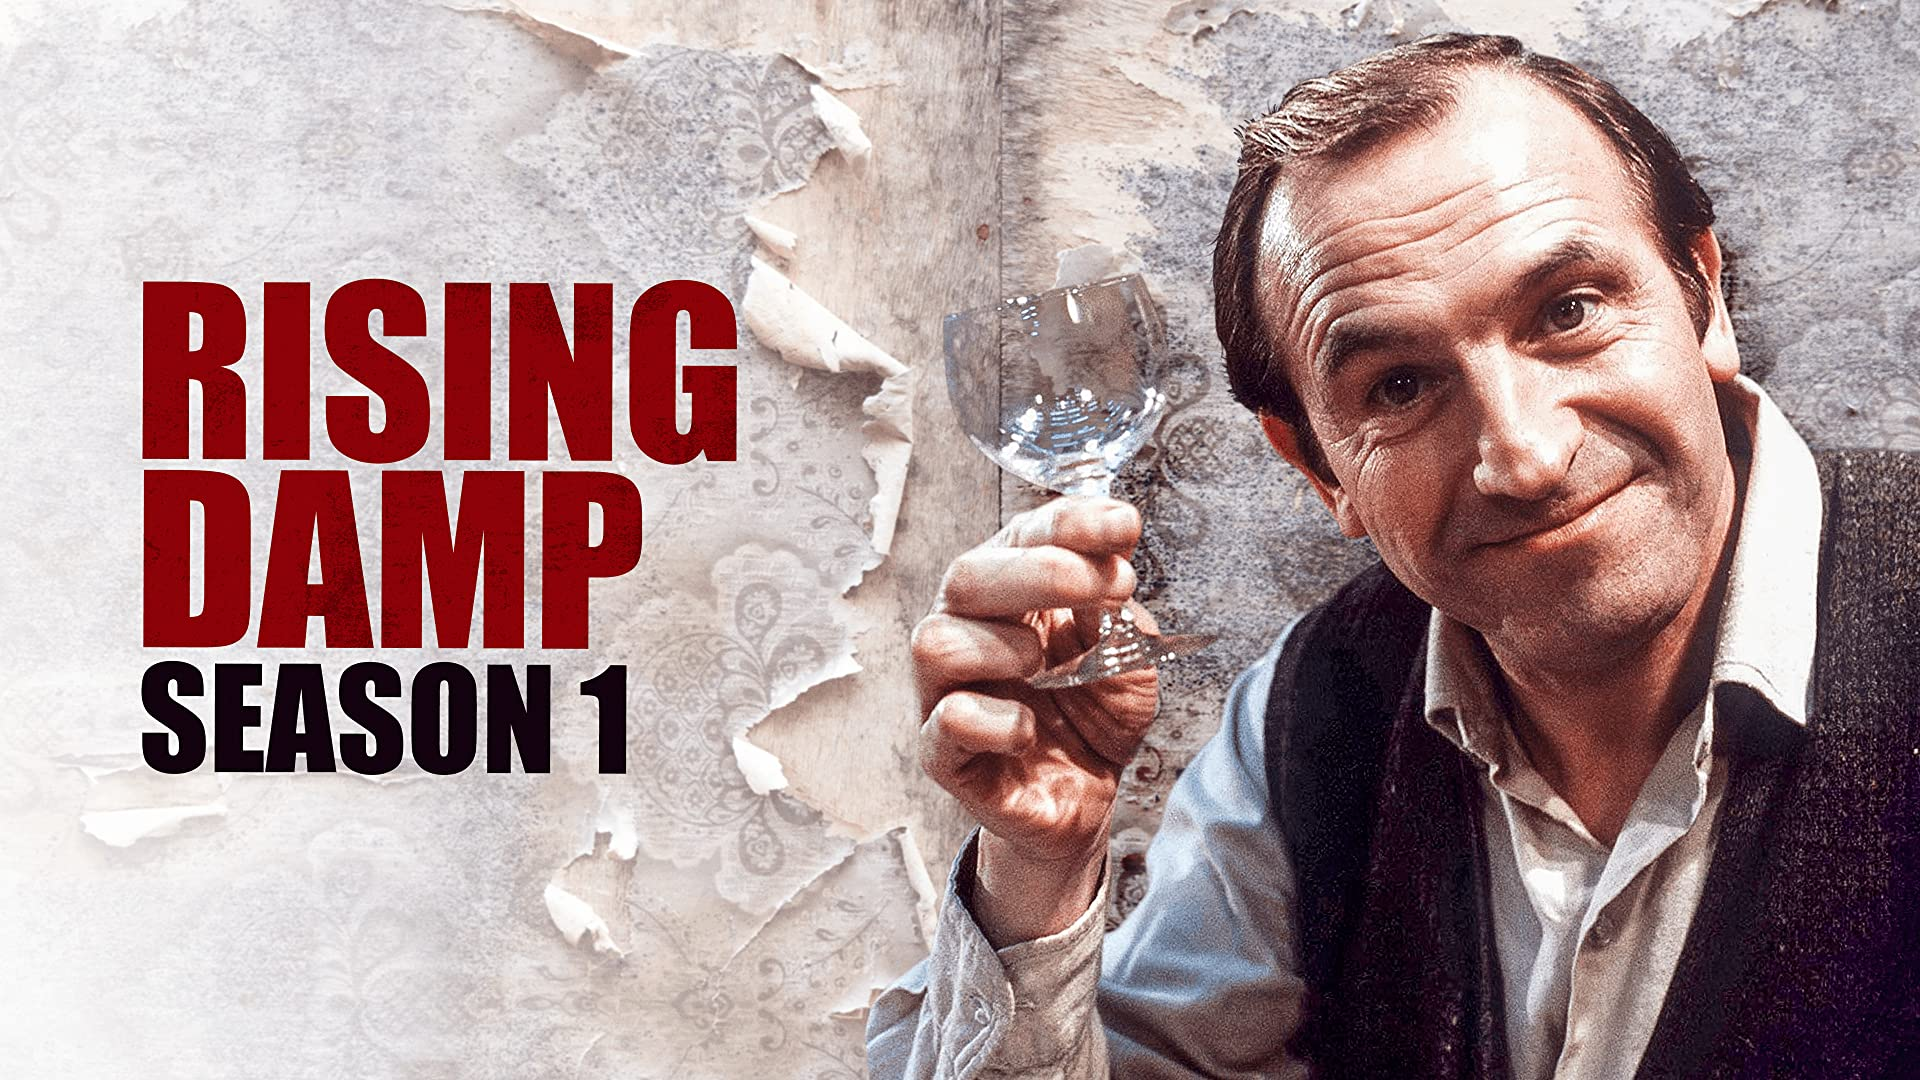 Rising Damp, Season 1